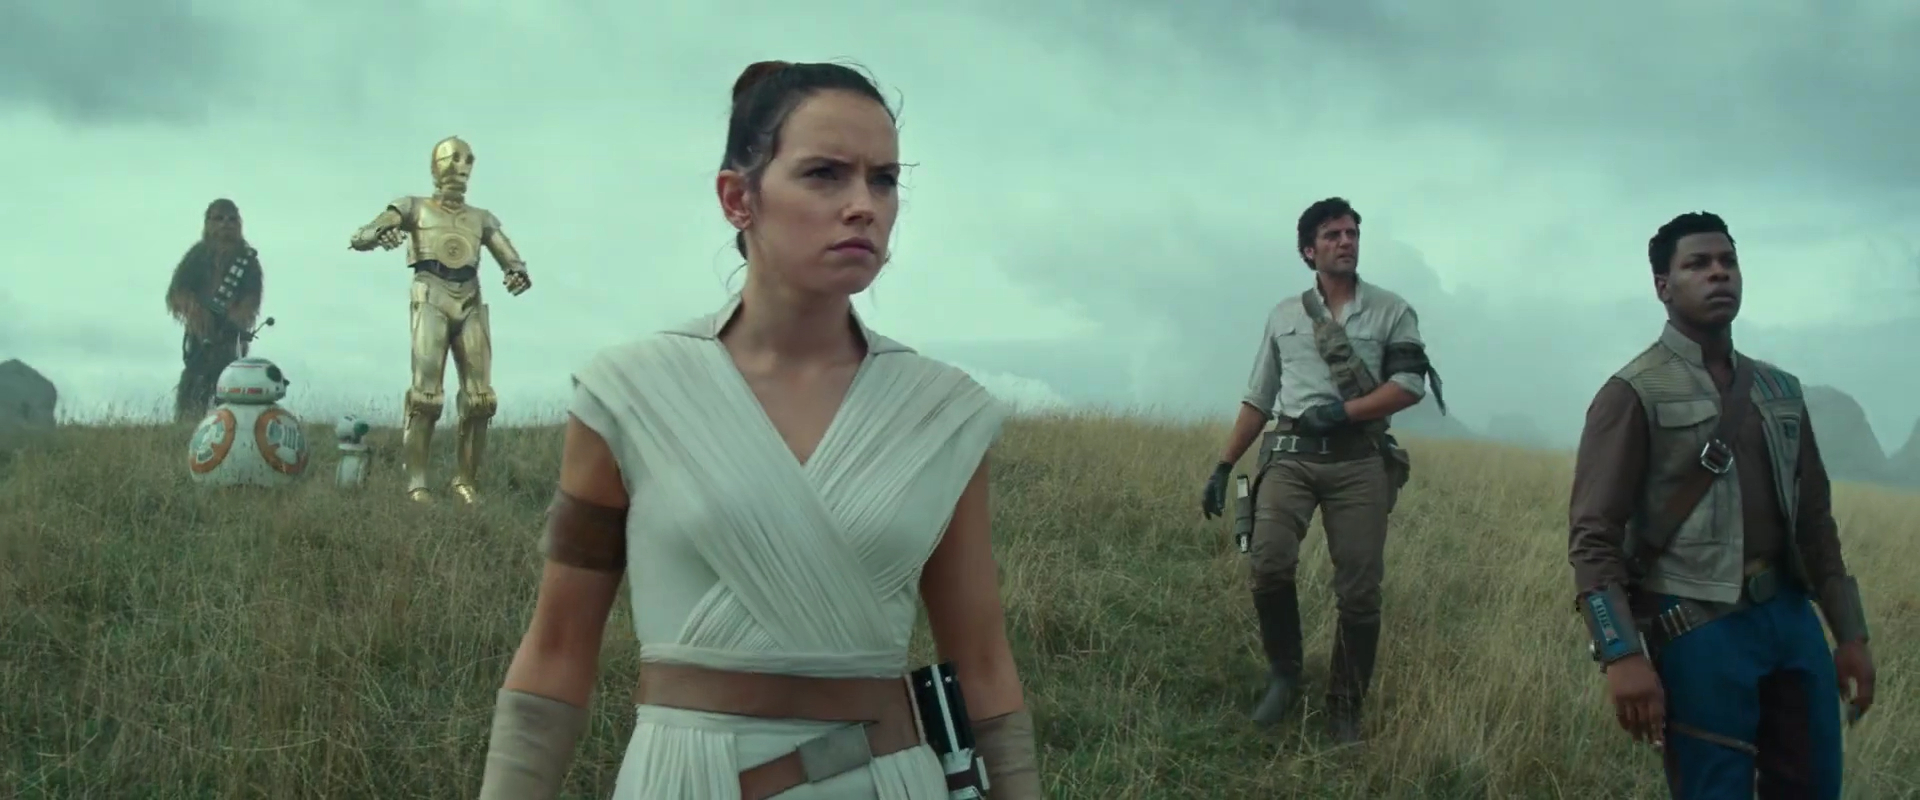 Rise of Skywalker, Rey and the gang